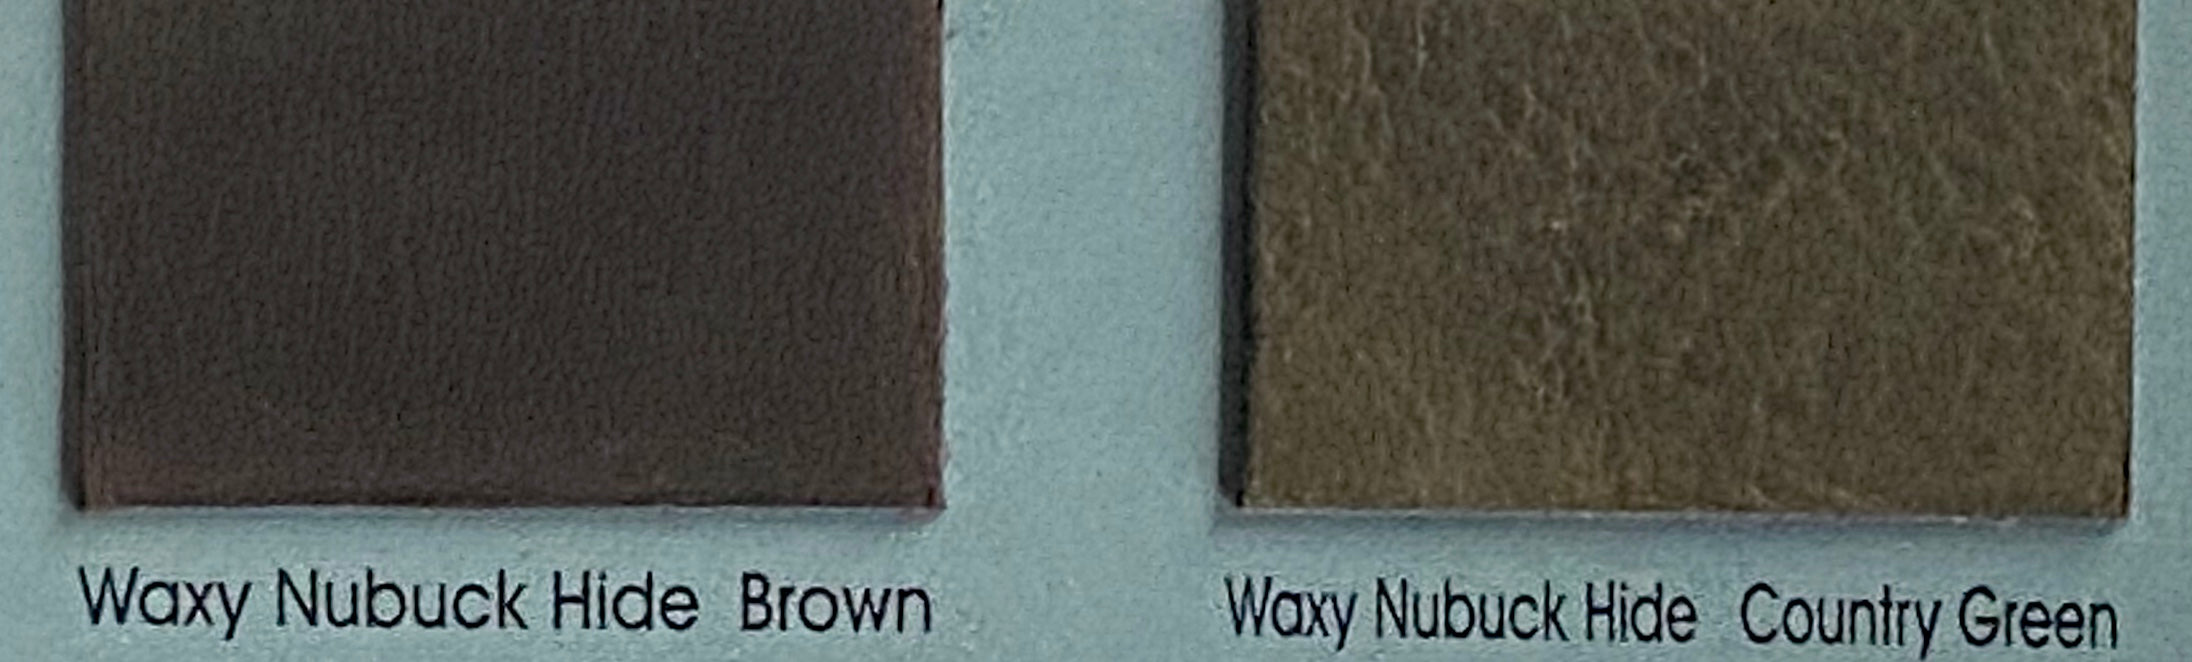 Nubuck Brown Waxy Nubuck Cow Hide : ( 0.9-1.1mm) This Hide Is Perfect For Leather Crafts , Leather Bags , Leather Accessories.